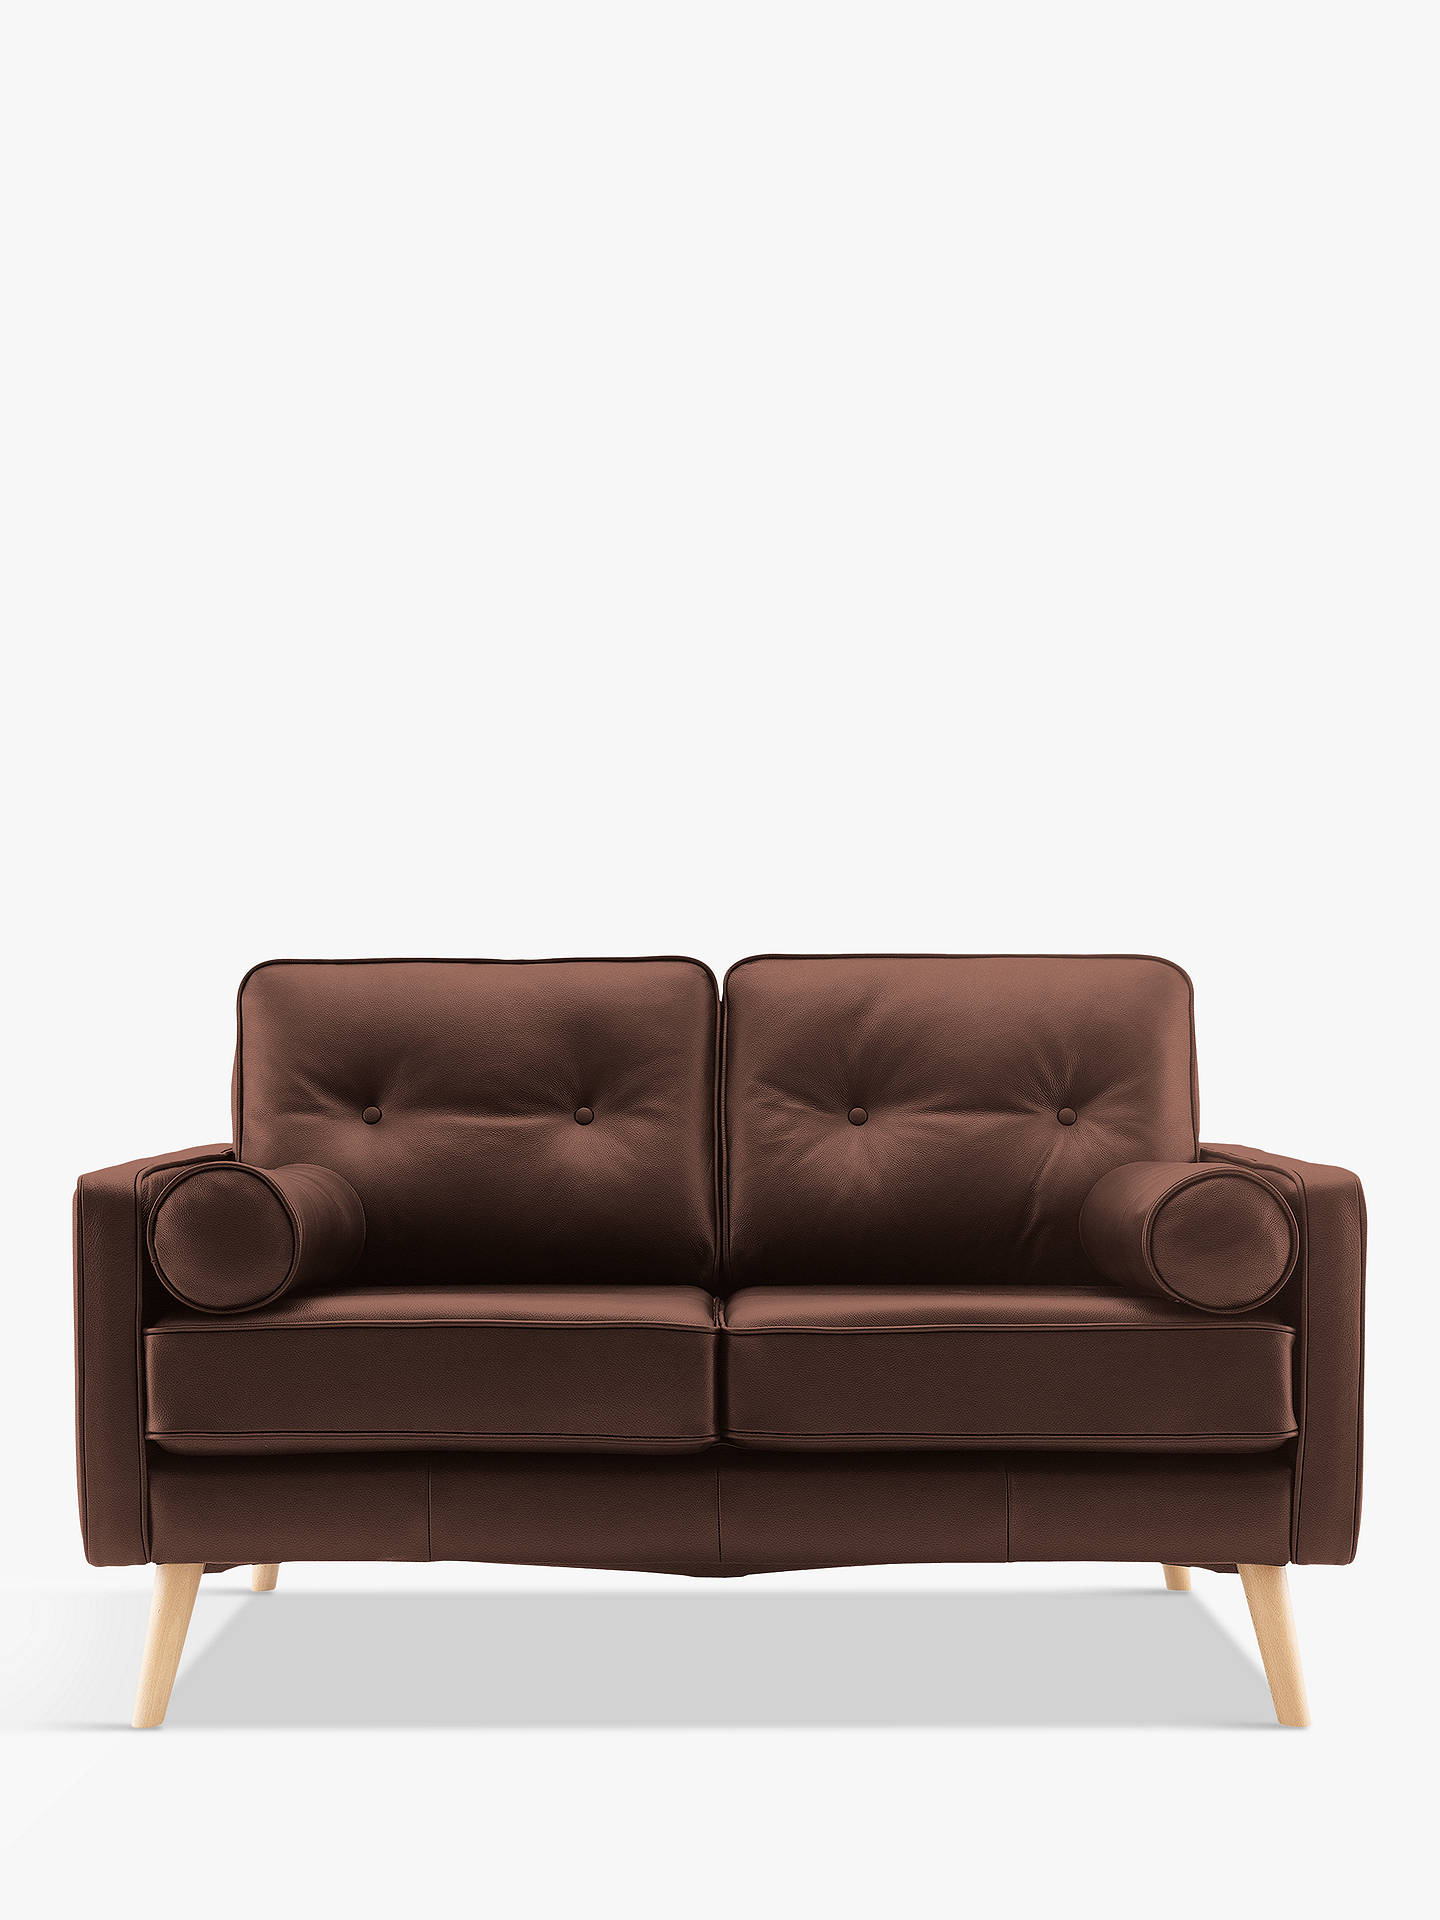 Buy G Plan Vintage The Sixty Five Small 2 Seater Leather Sofa, Capri Oak Online at johnlewis.com